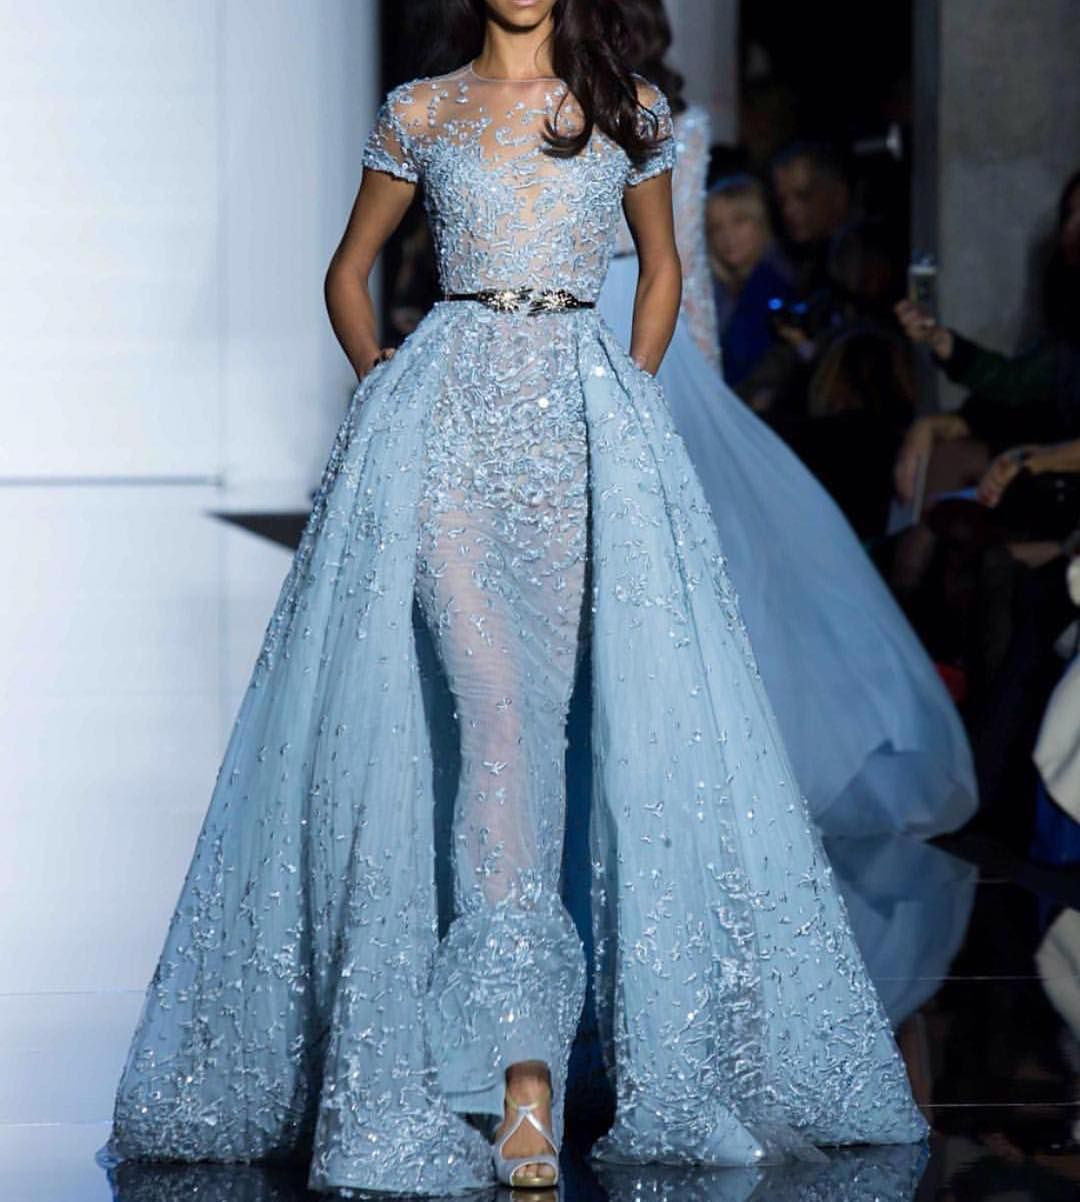 Zuhair Murad via @senstylable"